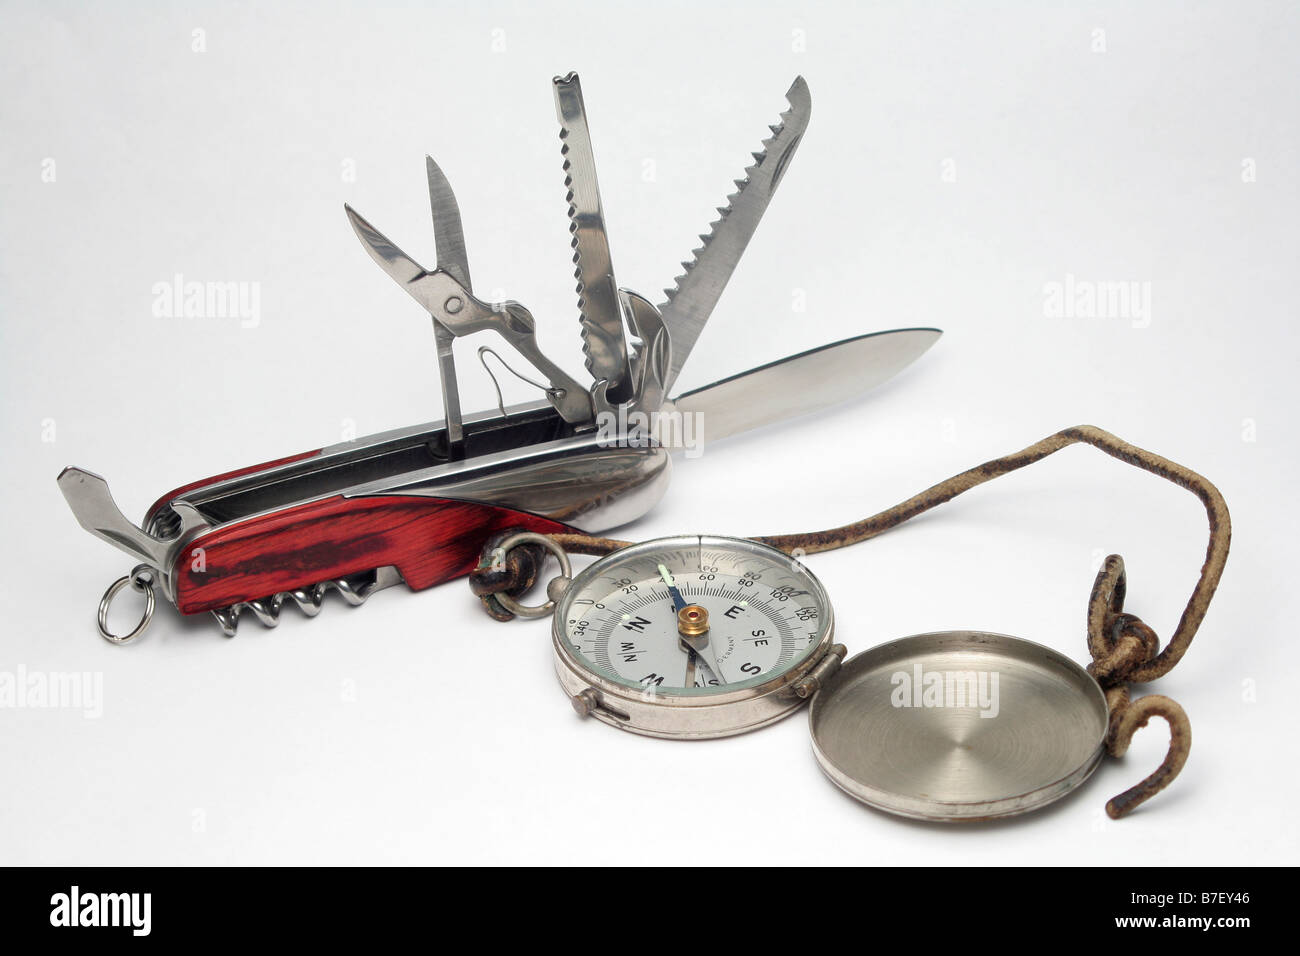 Old compass and multifunction pocket knife - Stock Image